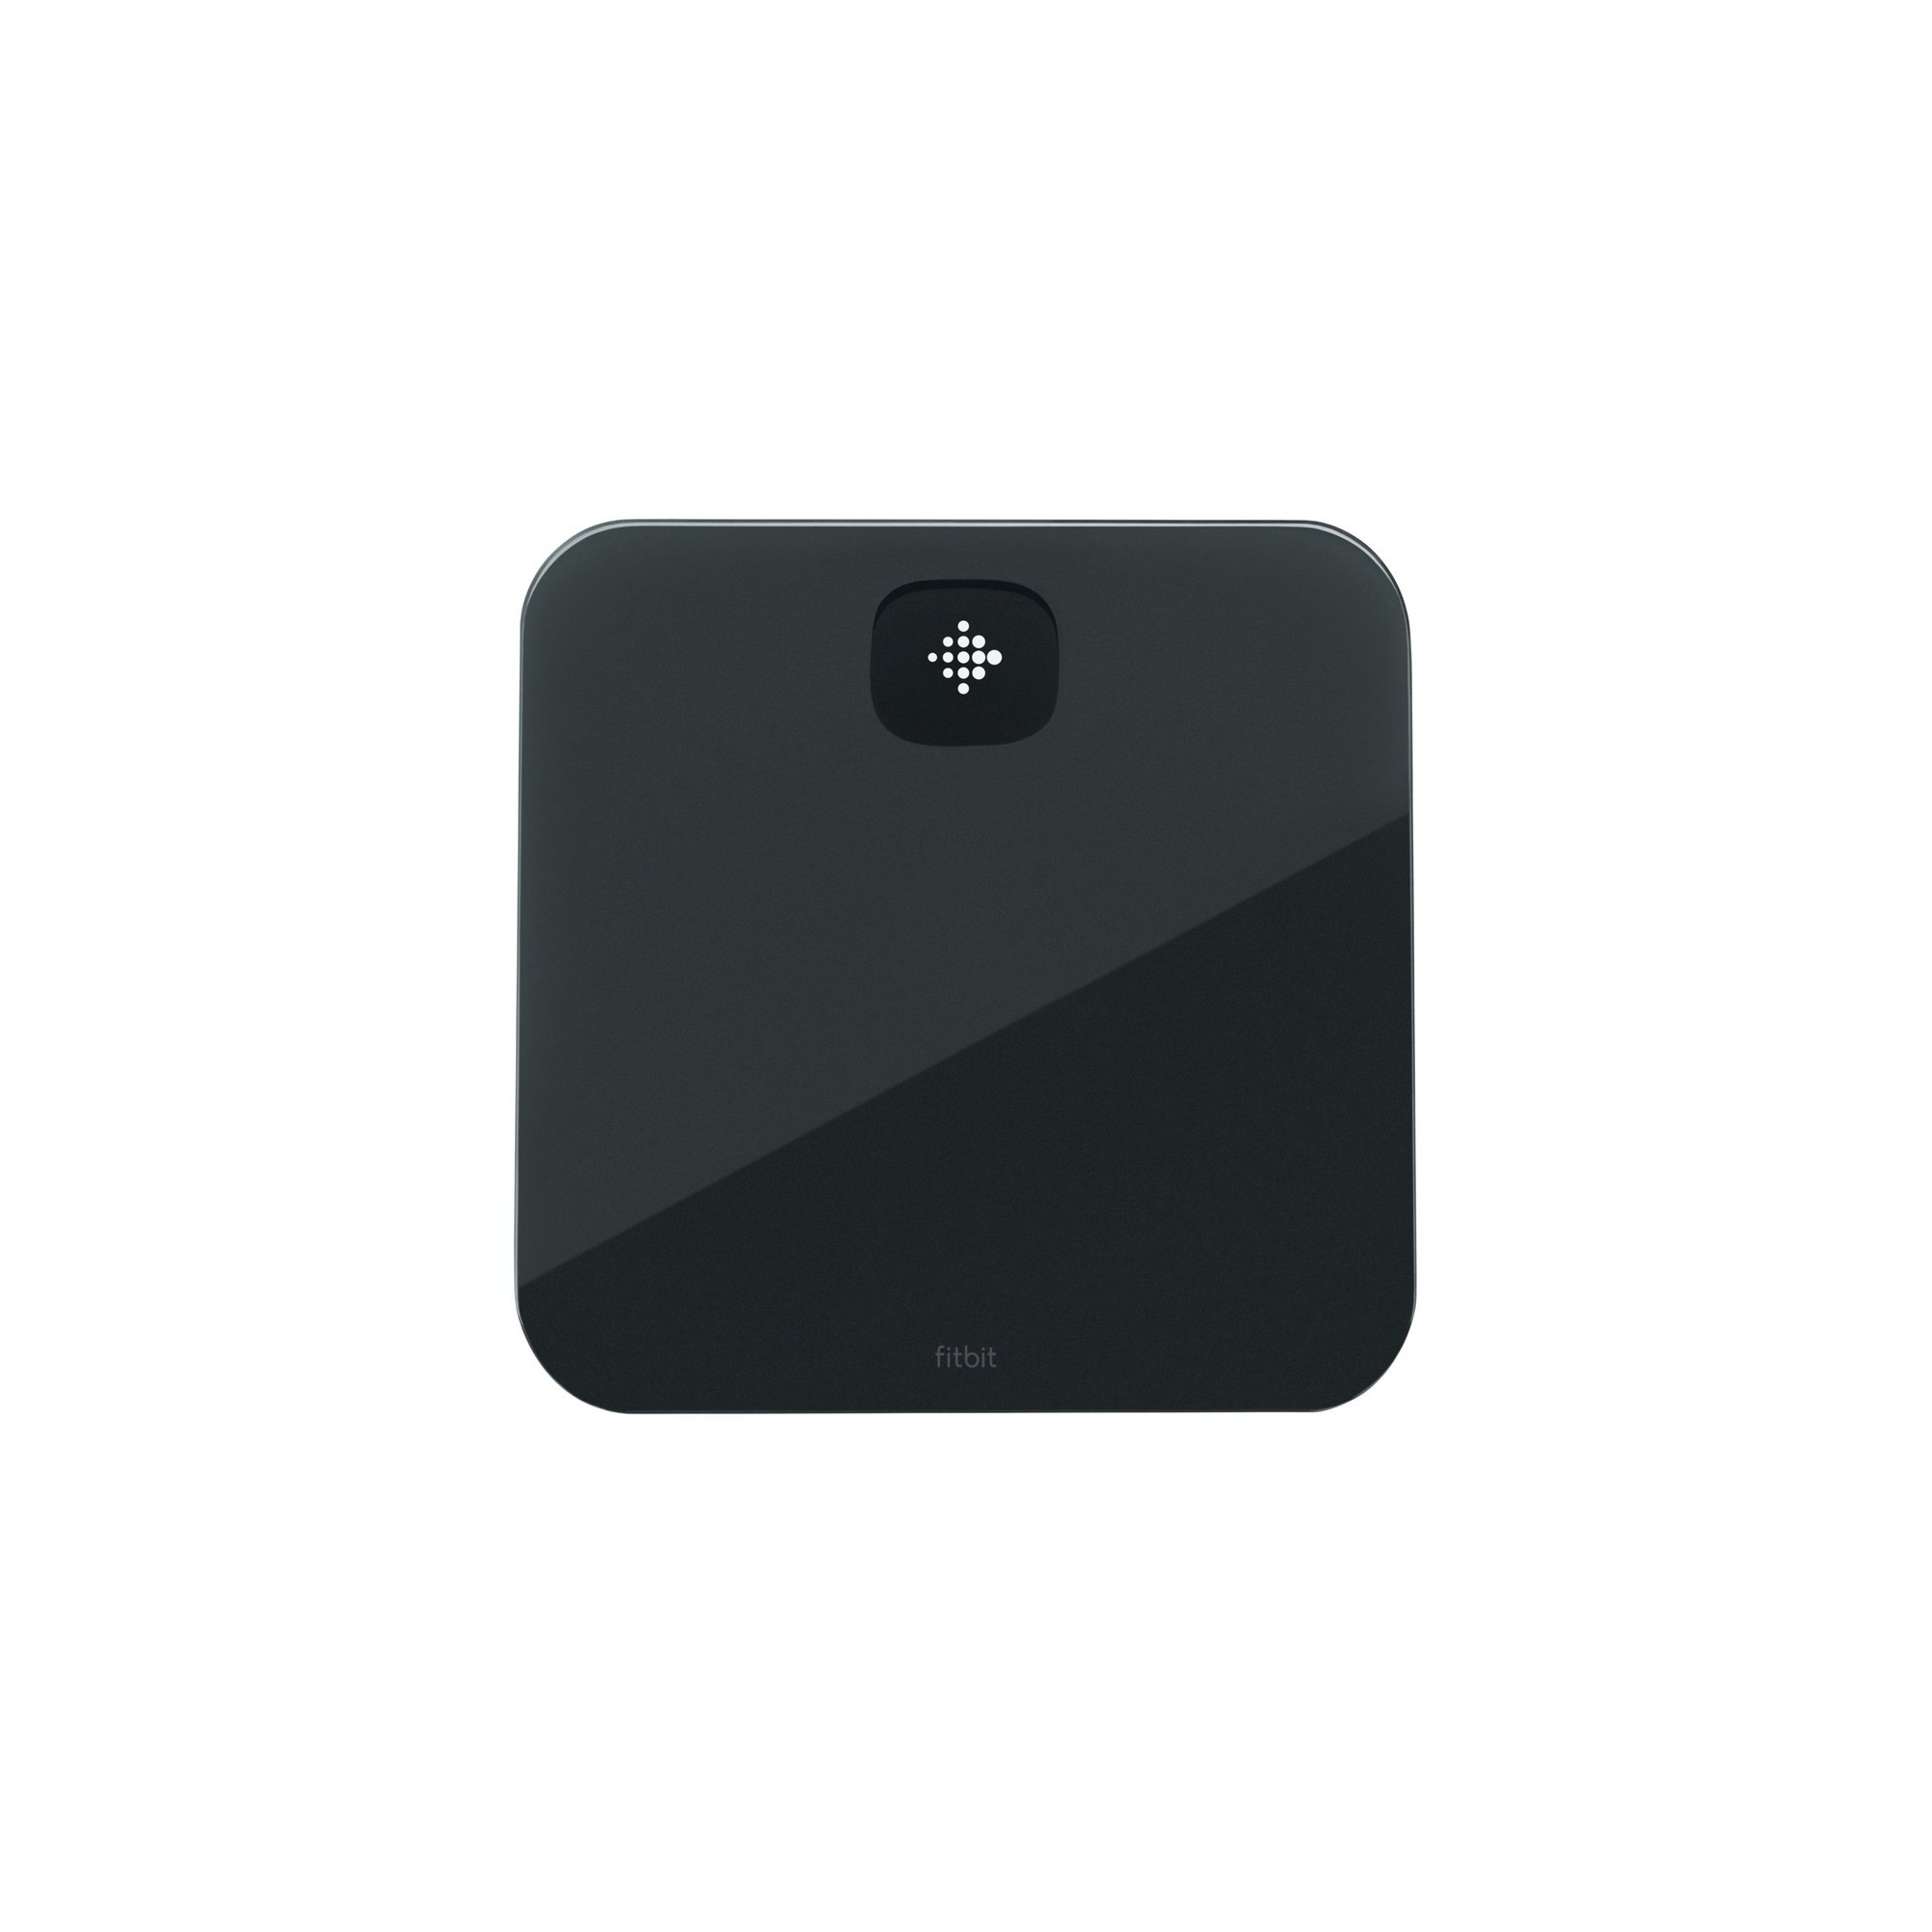 Image of Aria Air Smart Scale